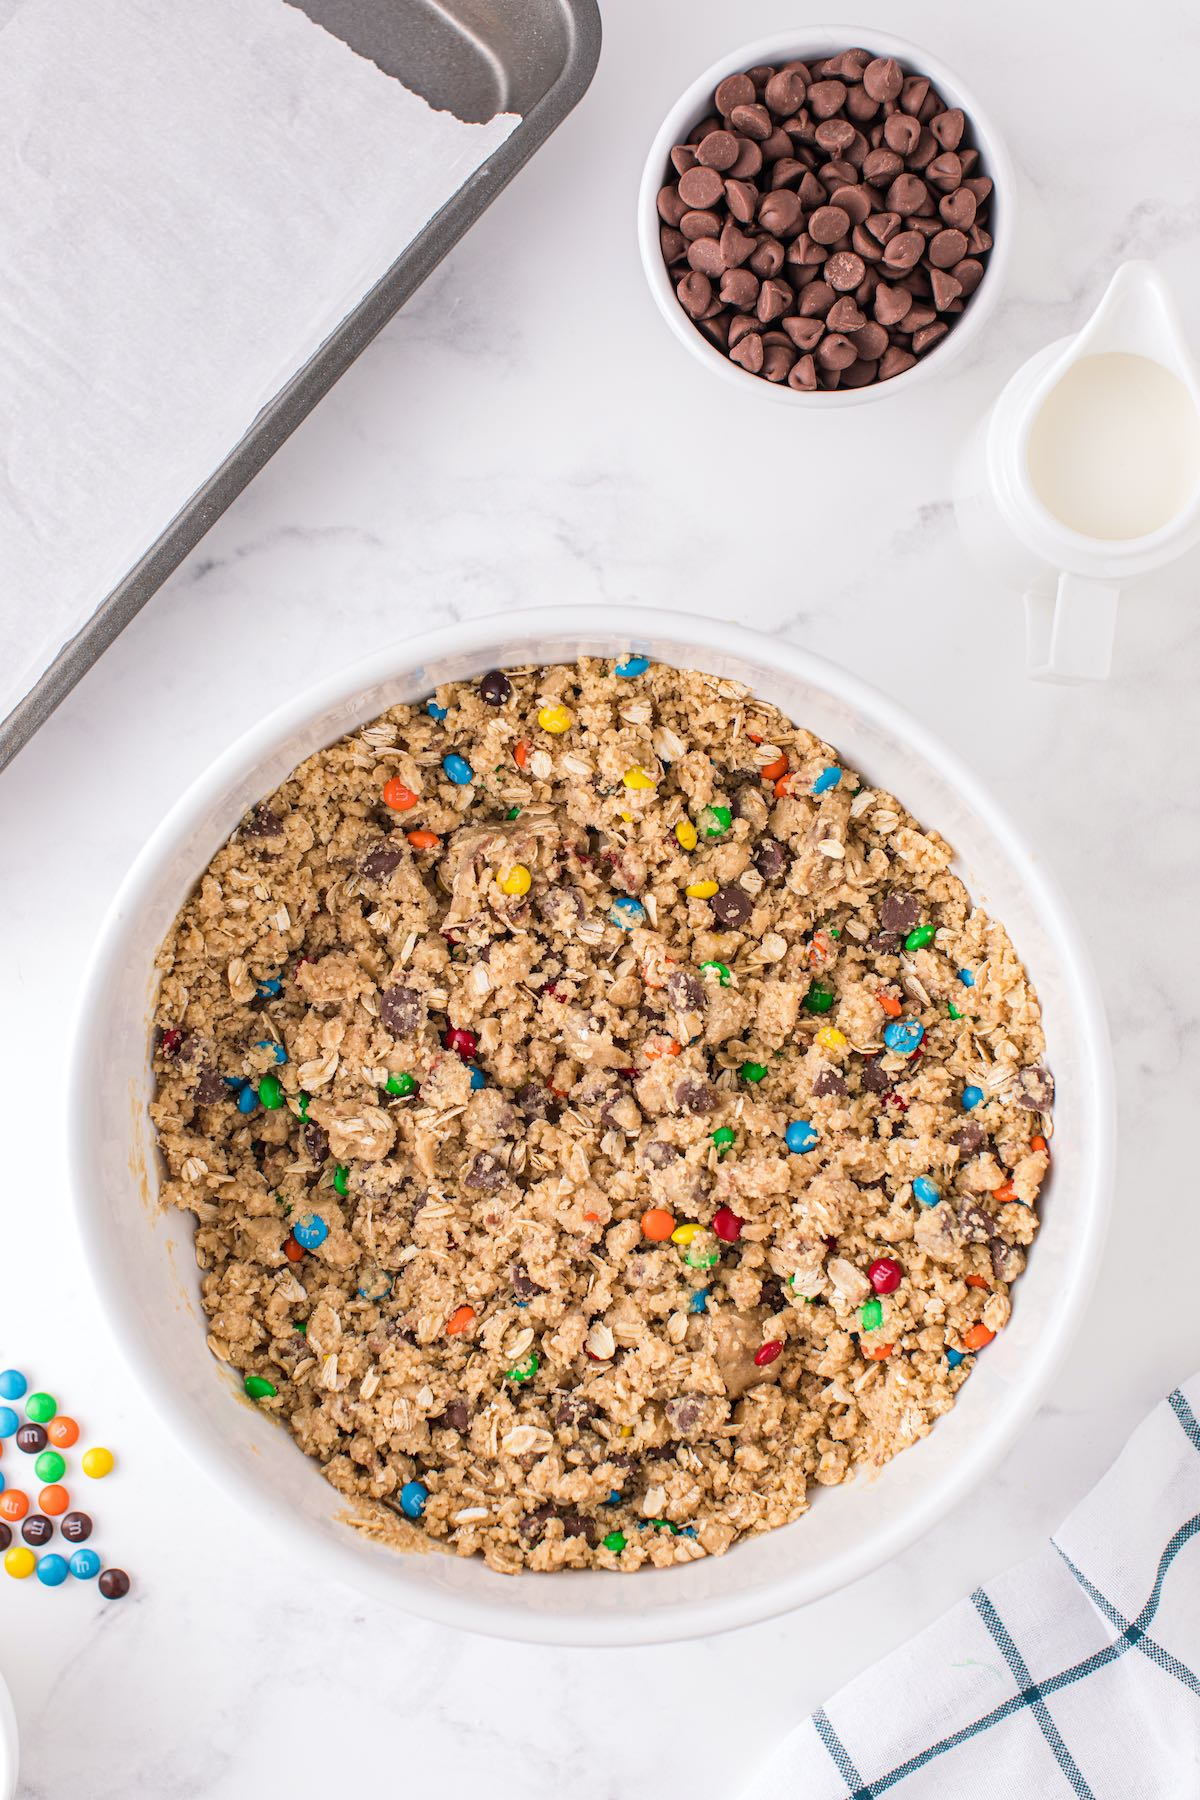 Fold in old-fashioned oats, chocolate chips, and mini M&Ms